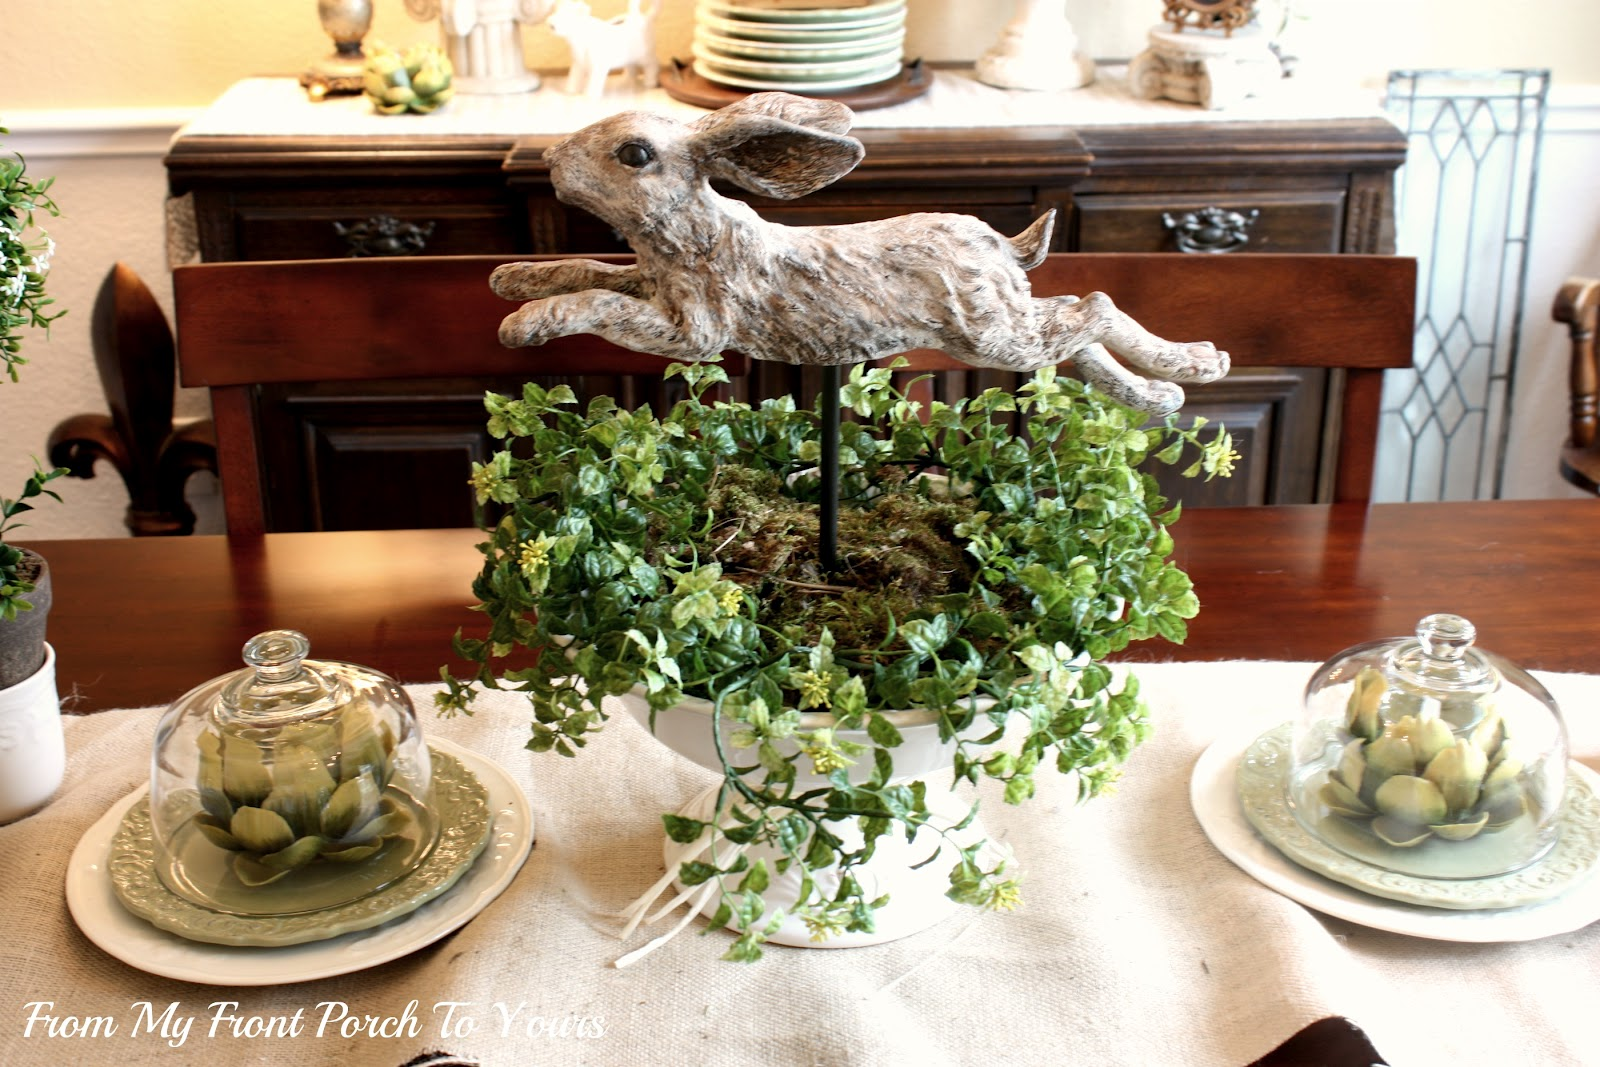 From My Front Porch To Yours: Spring Dining Room